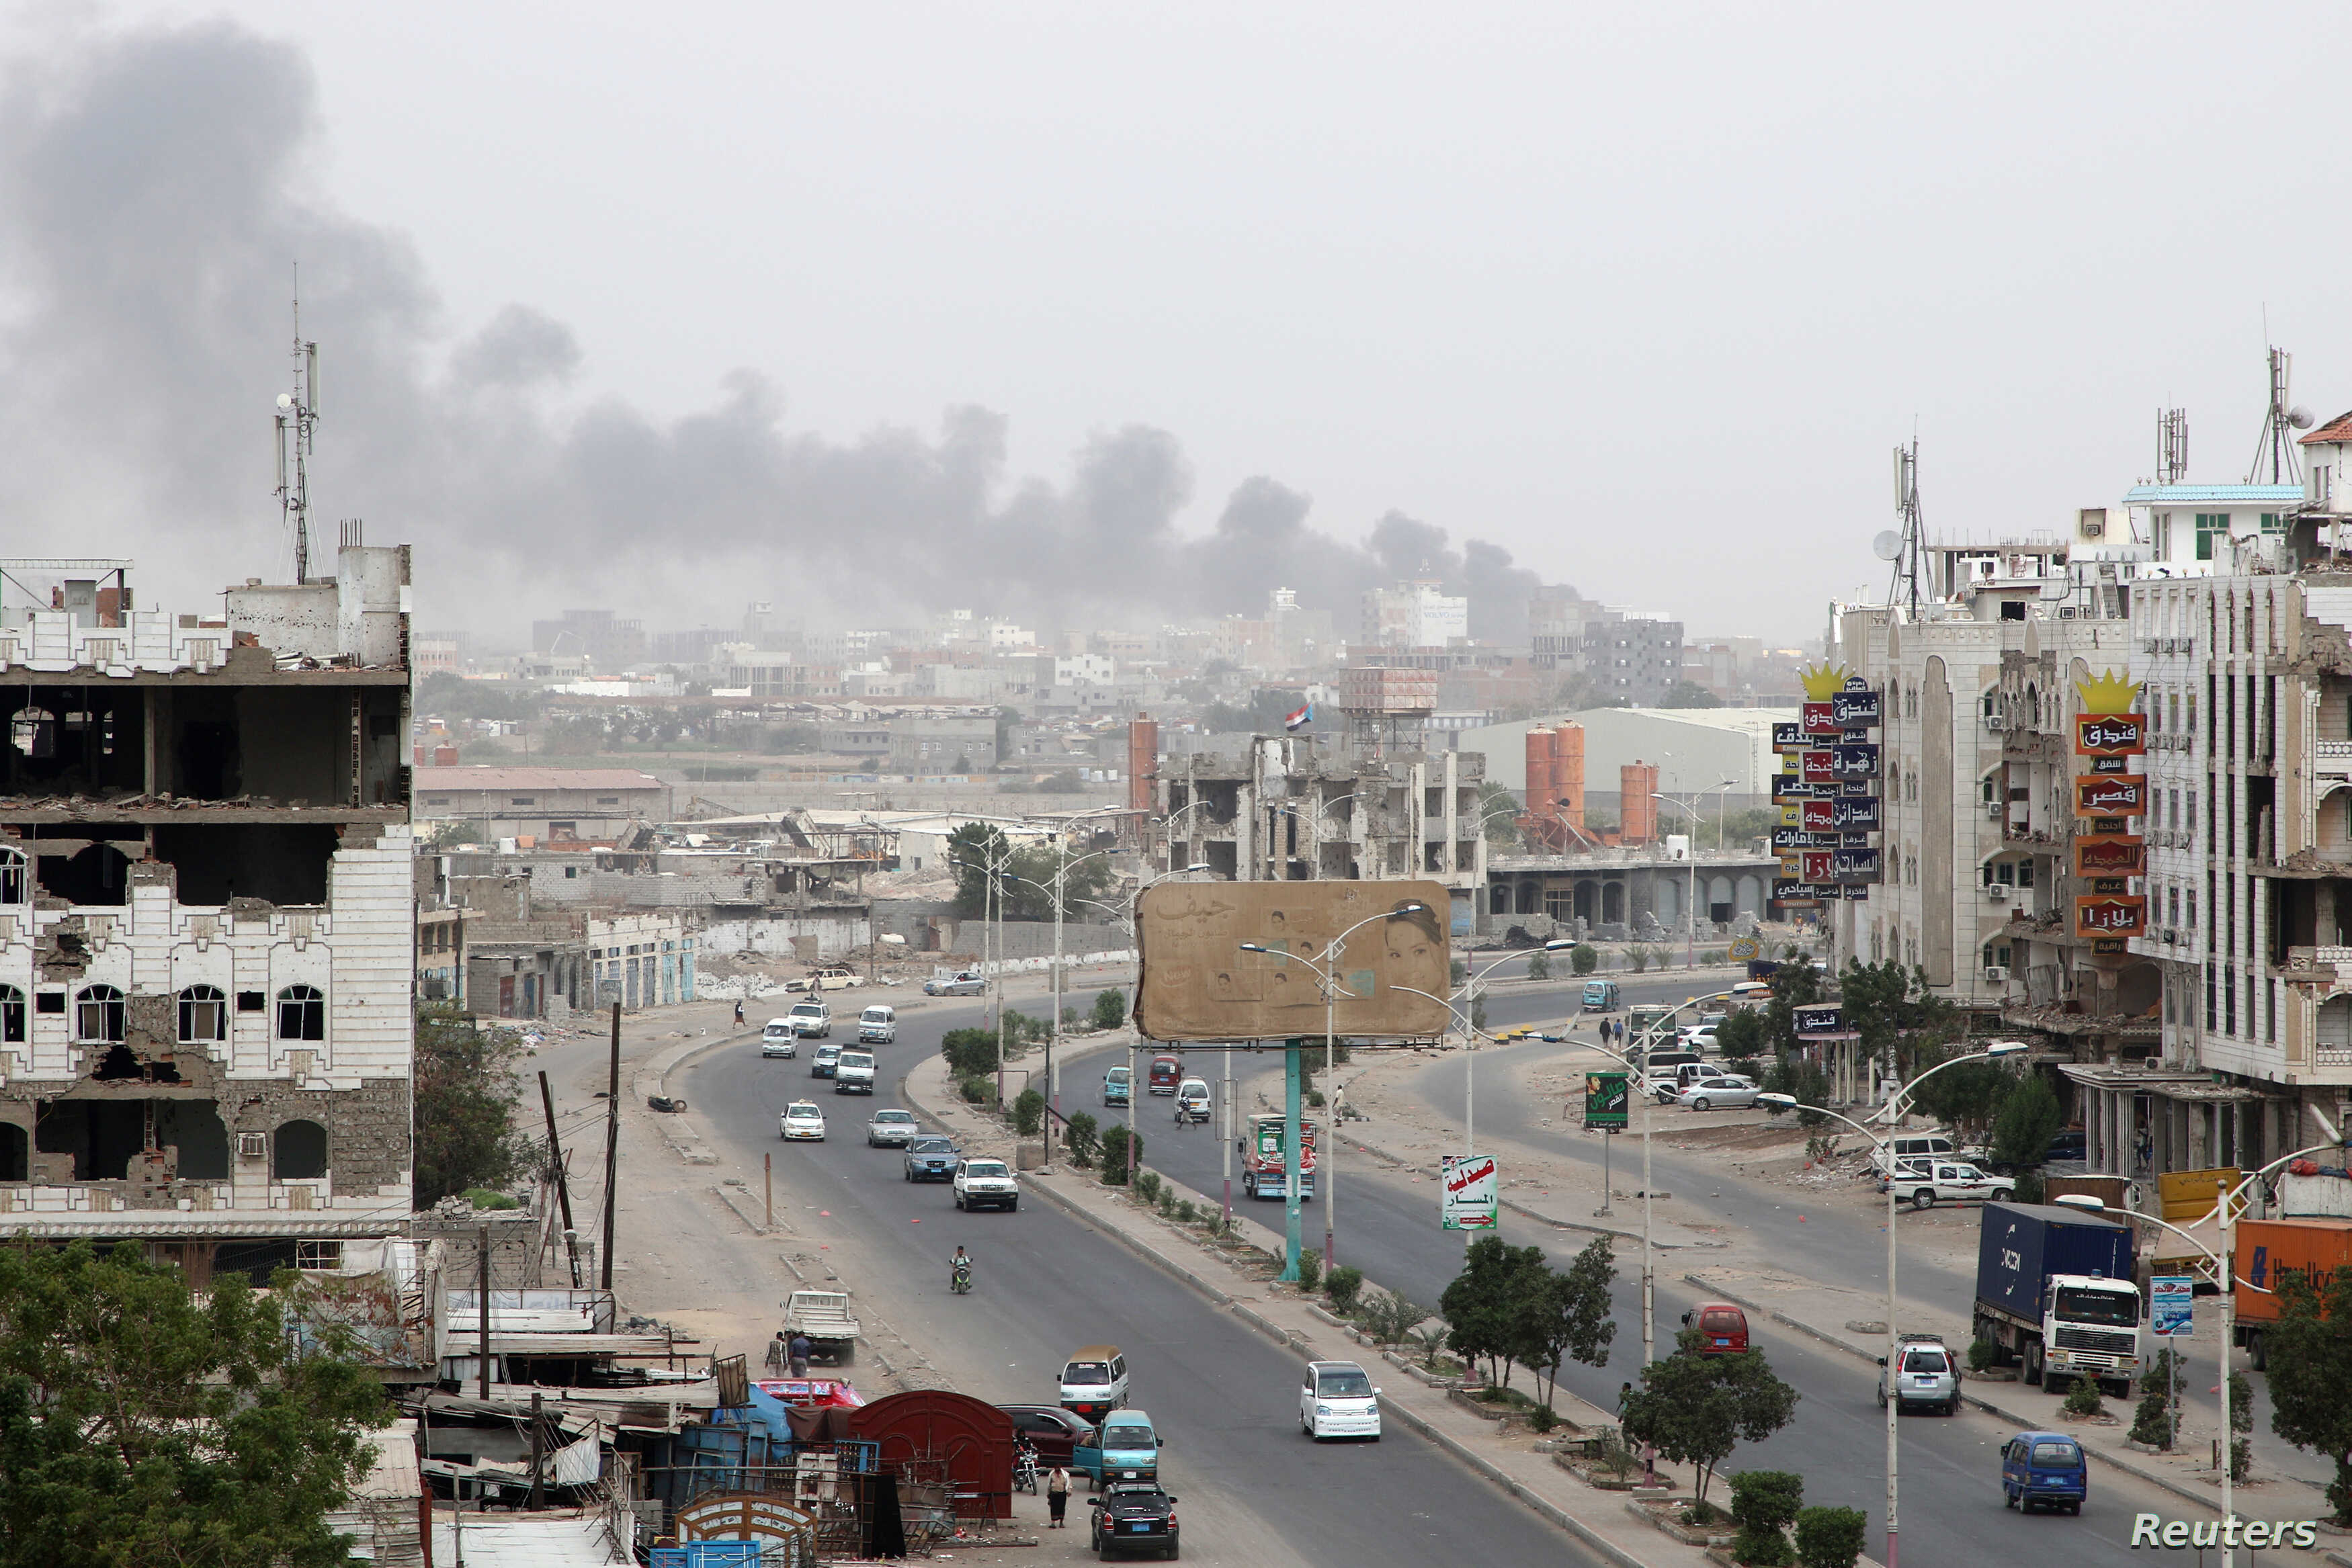 Smoke billows from a car parts store hit by shelling during the conflict in the port city of Aden, Yemen Jan. 31, 2018.